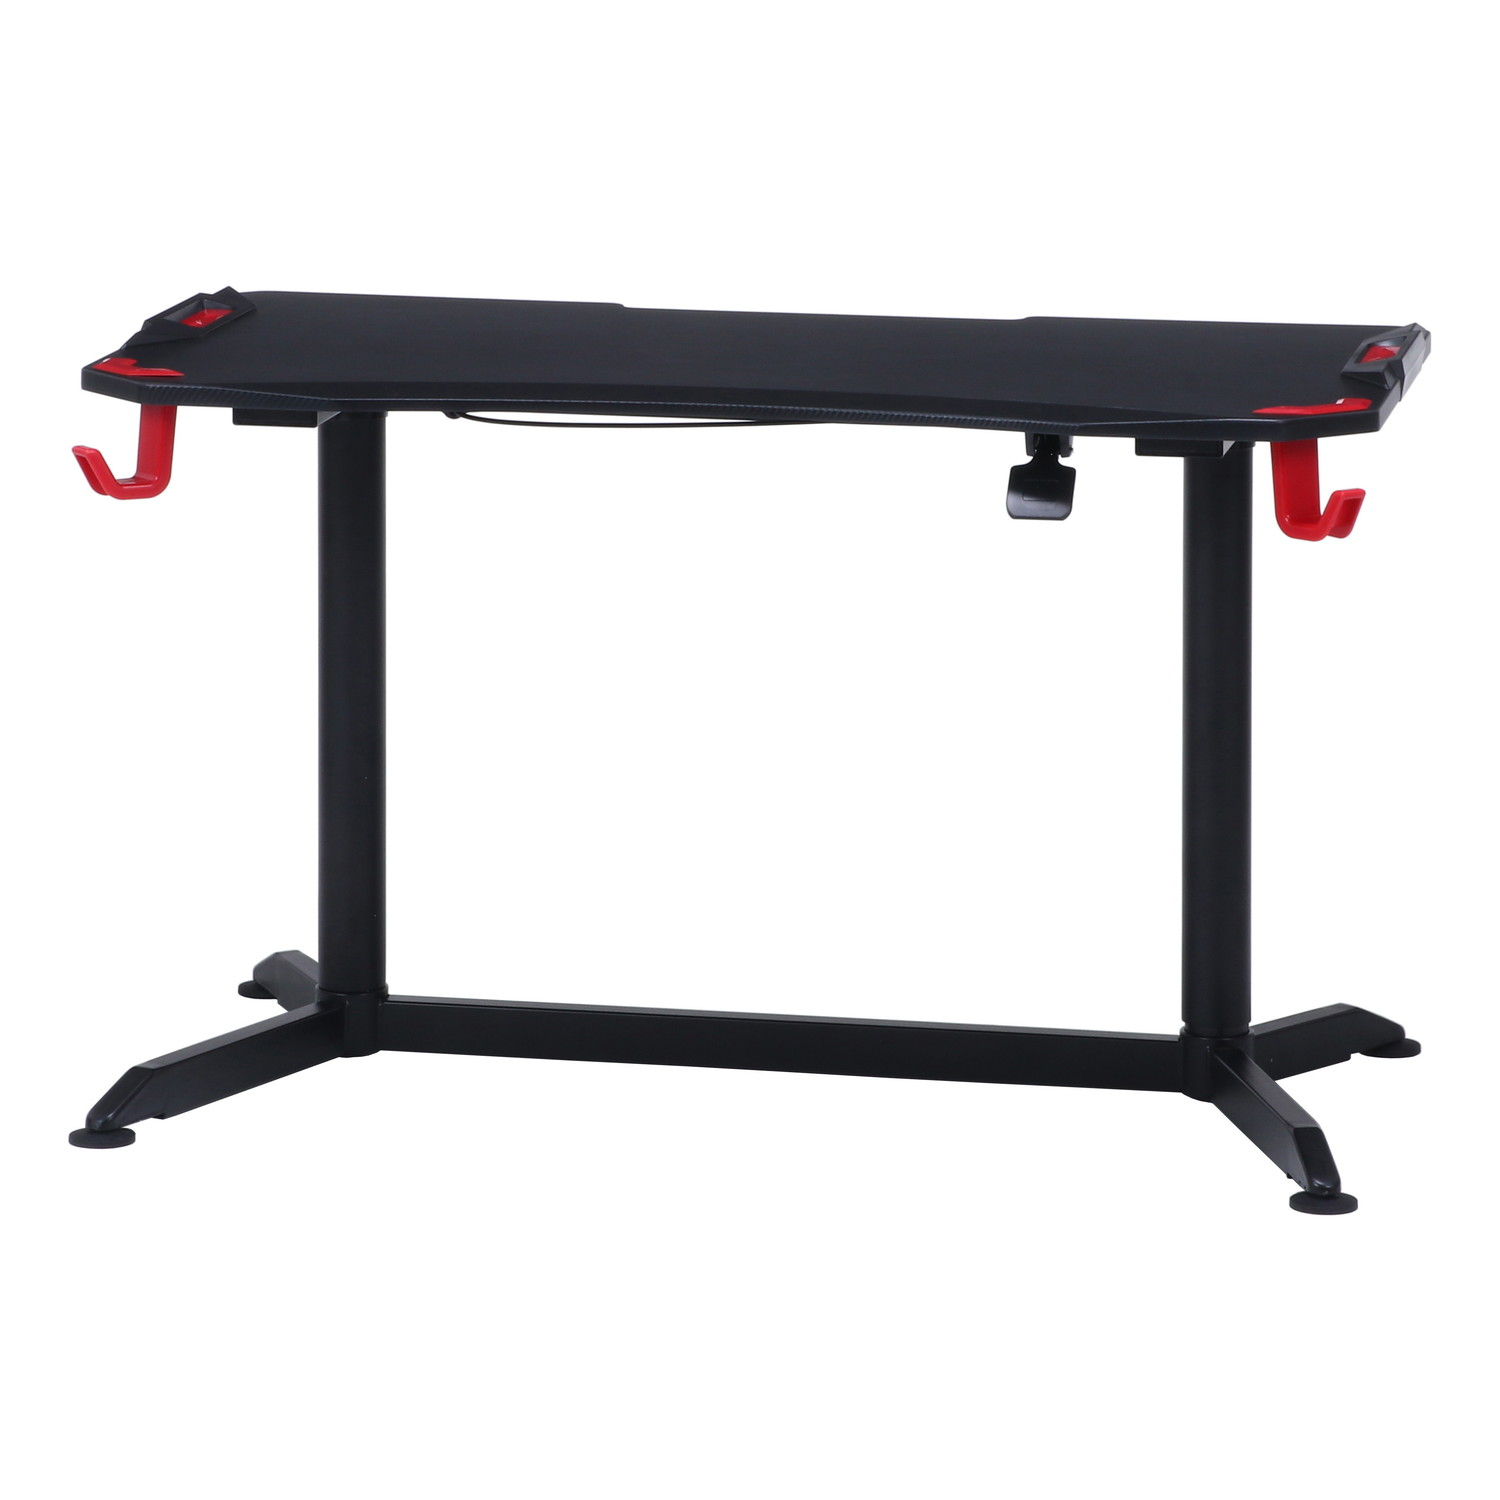 [C/D:38138] GAMING DESK XeNO(ゼノ)PRO-01 RED